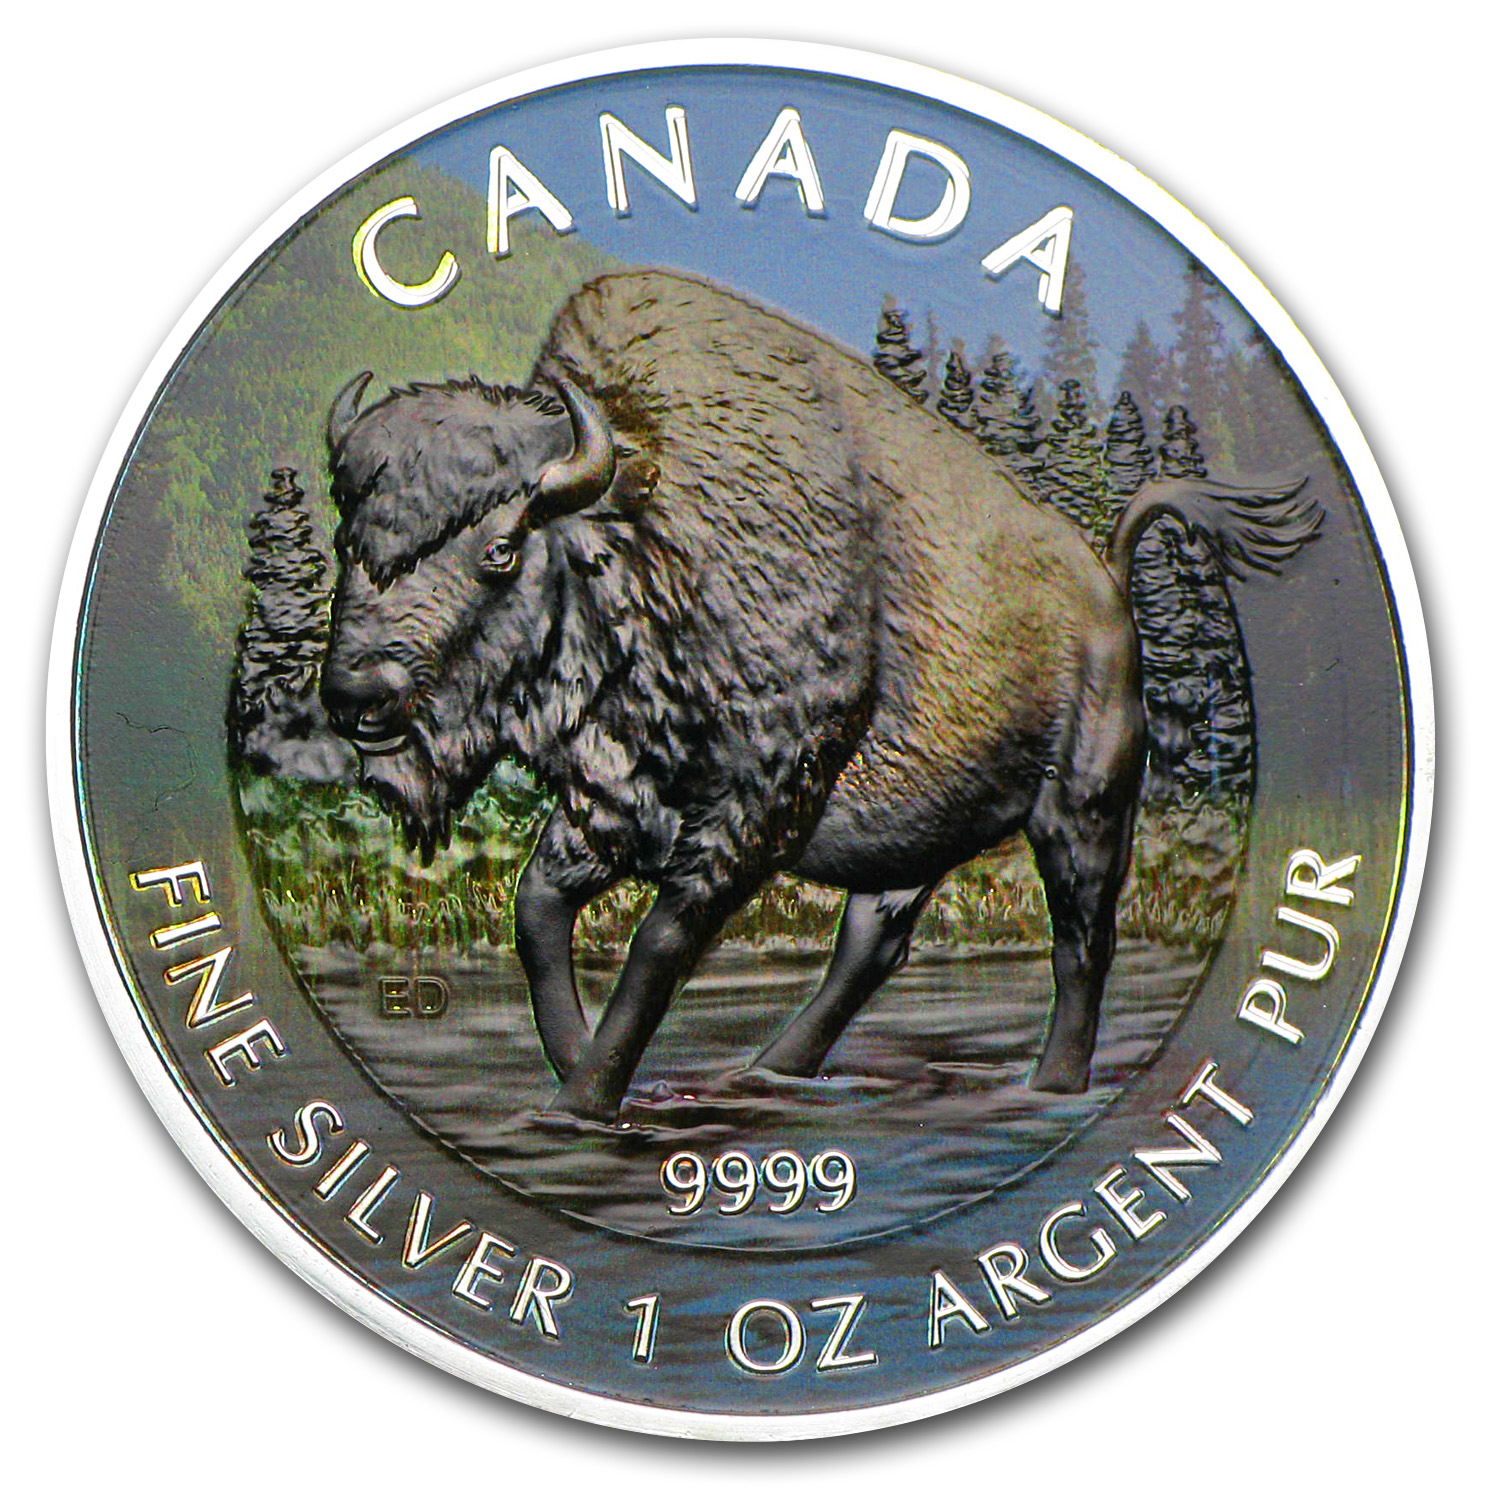 2013 Canada 1 oz Silver Wildlife Series Wood Bison (Full Color)